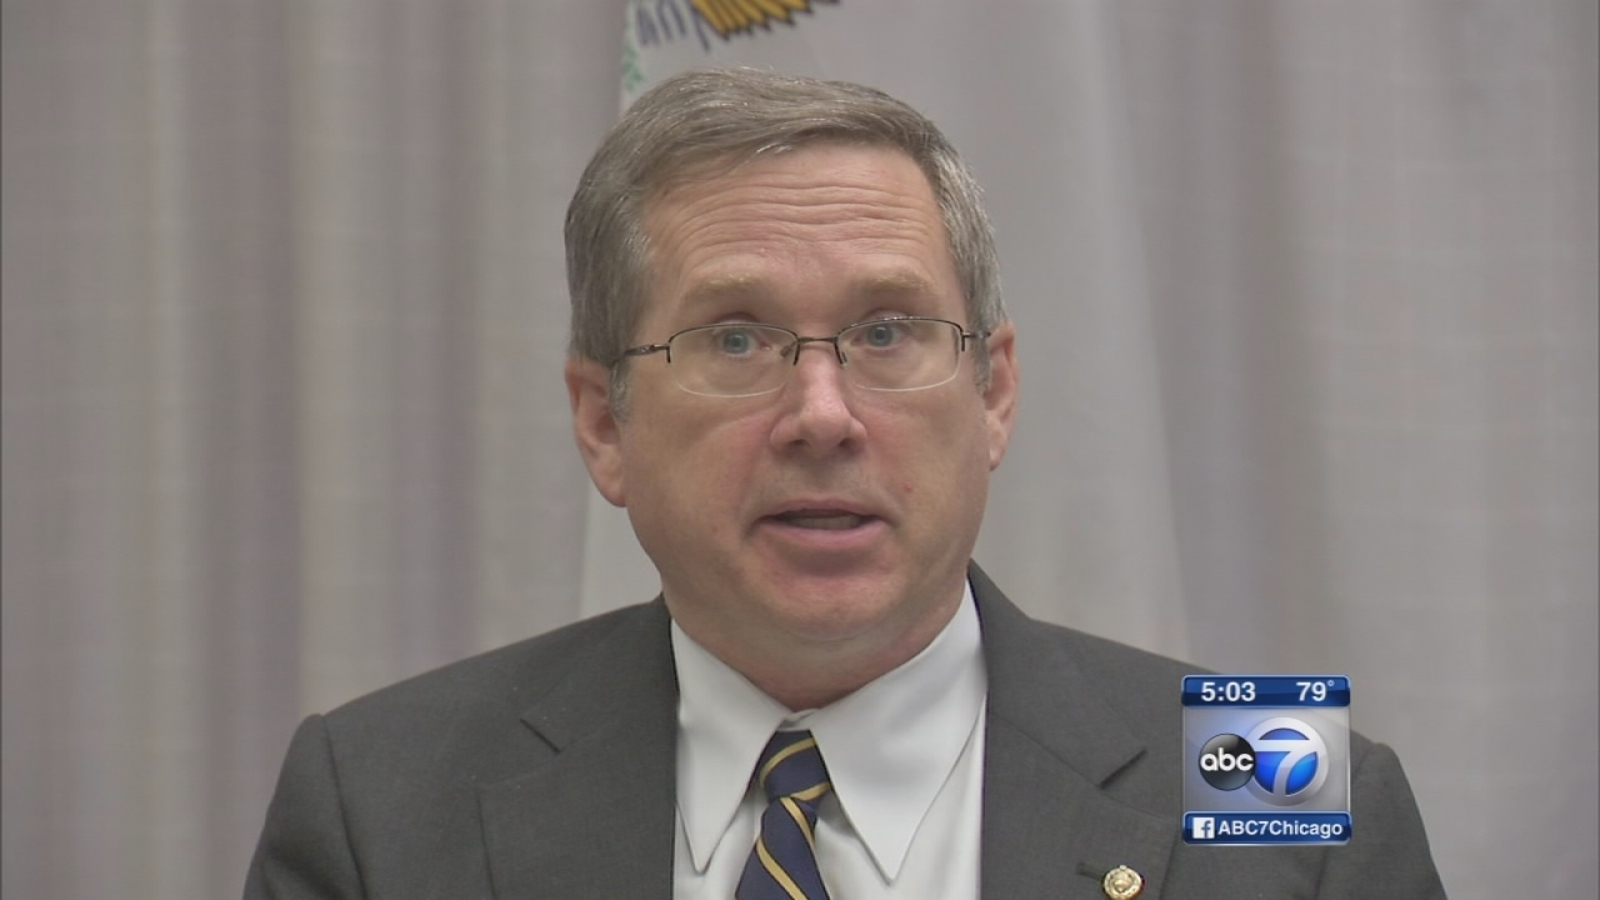 Kirk wants head of Hines VA to resign - ABC7 Chicago